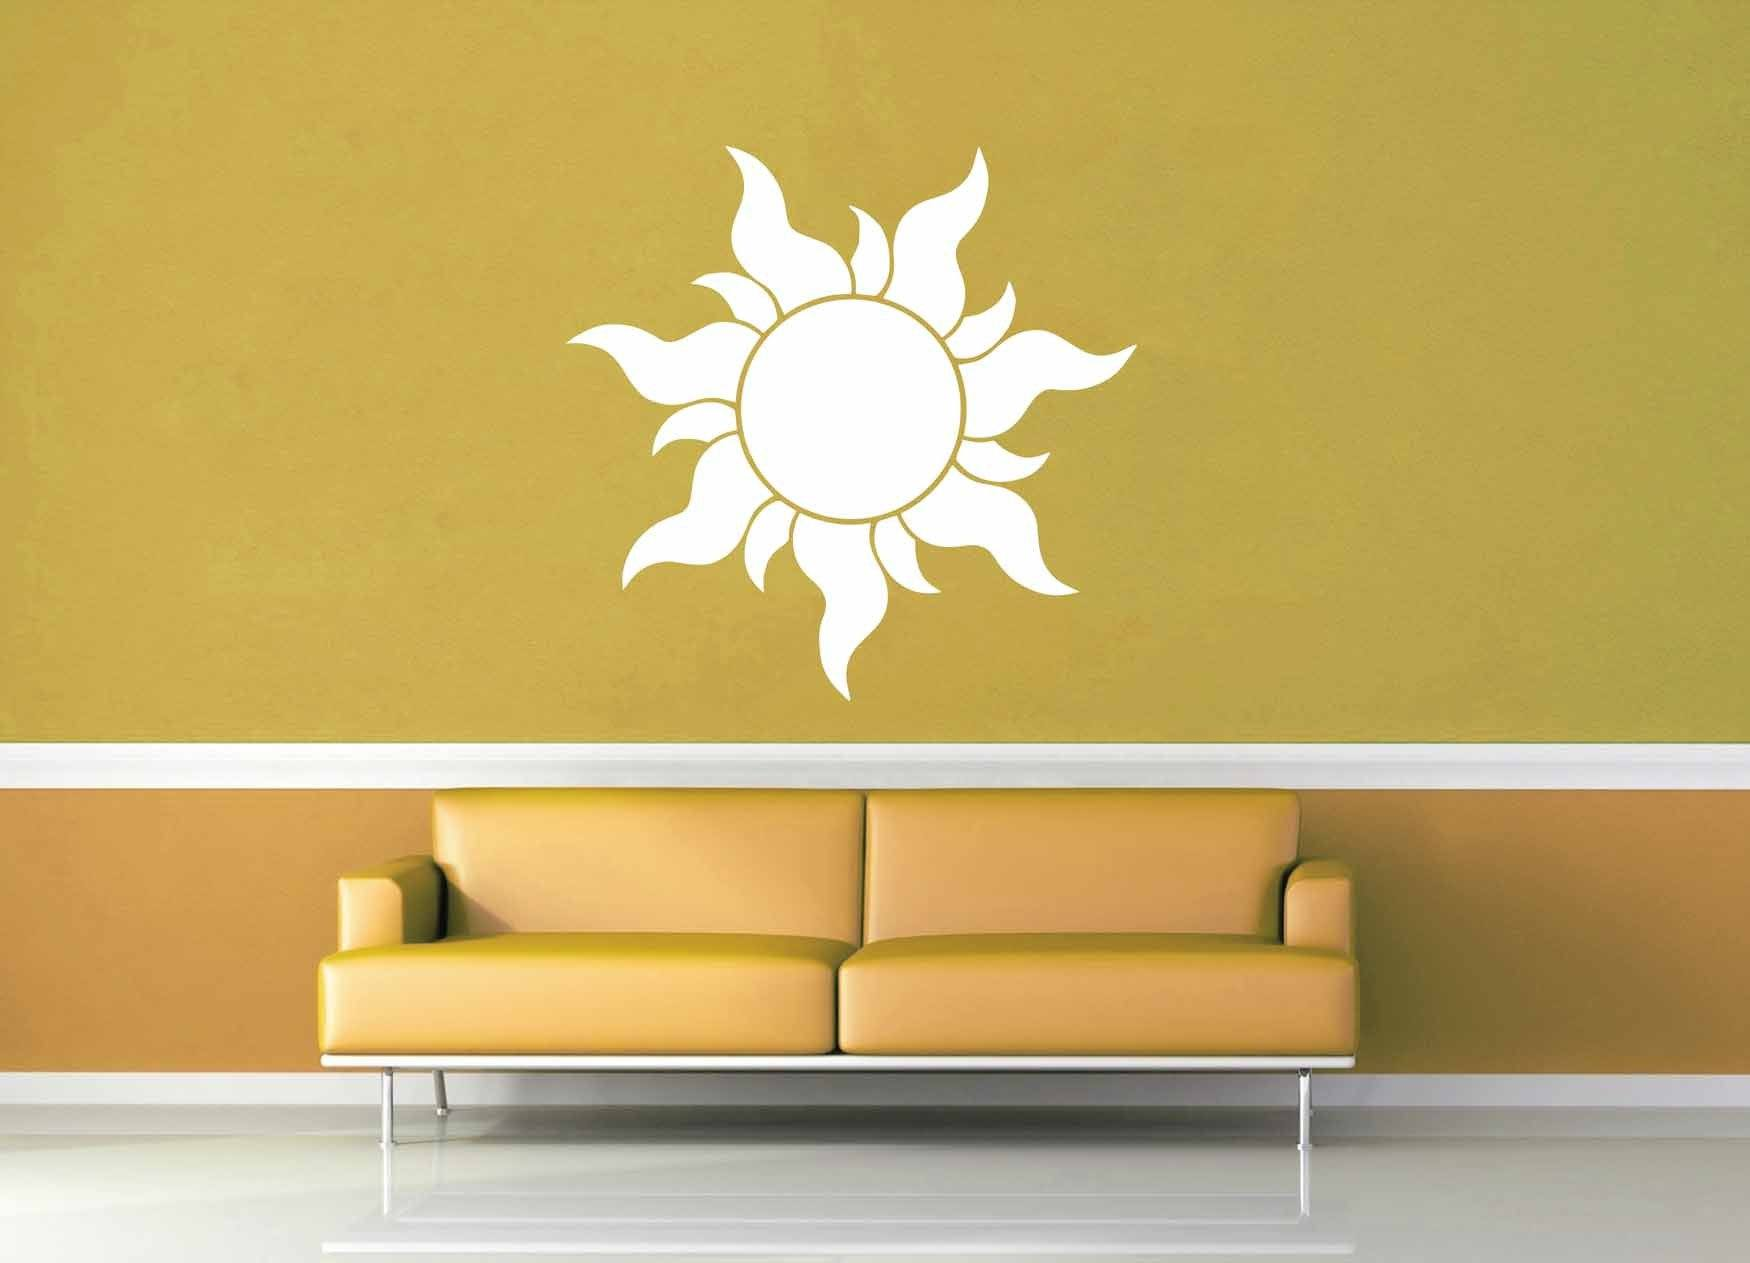 Amazing Wall Decor Stickers Nz Image Collection - Art & Wall Decor ...